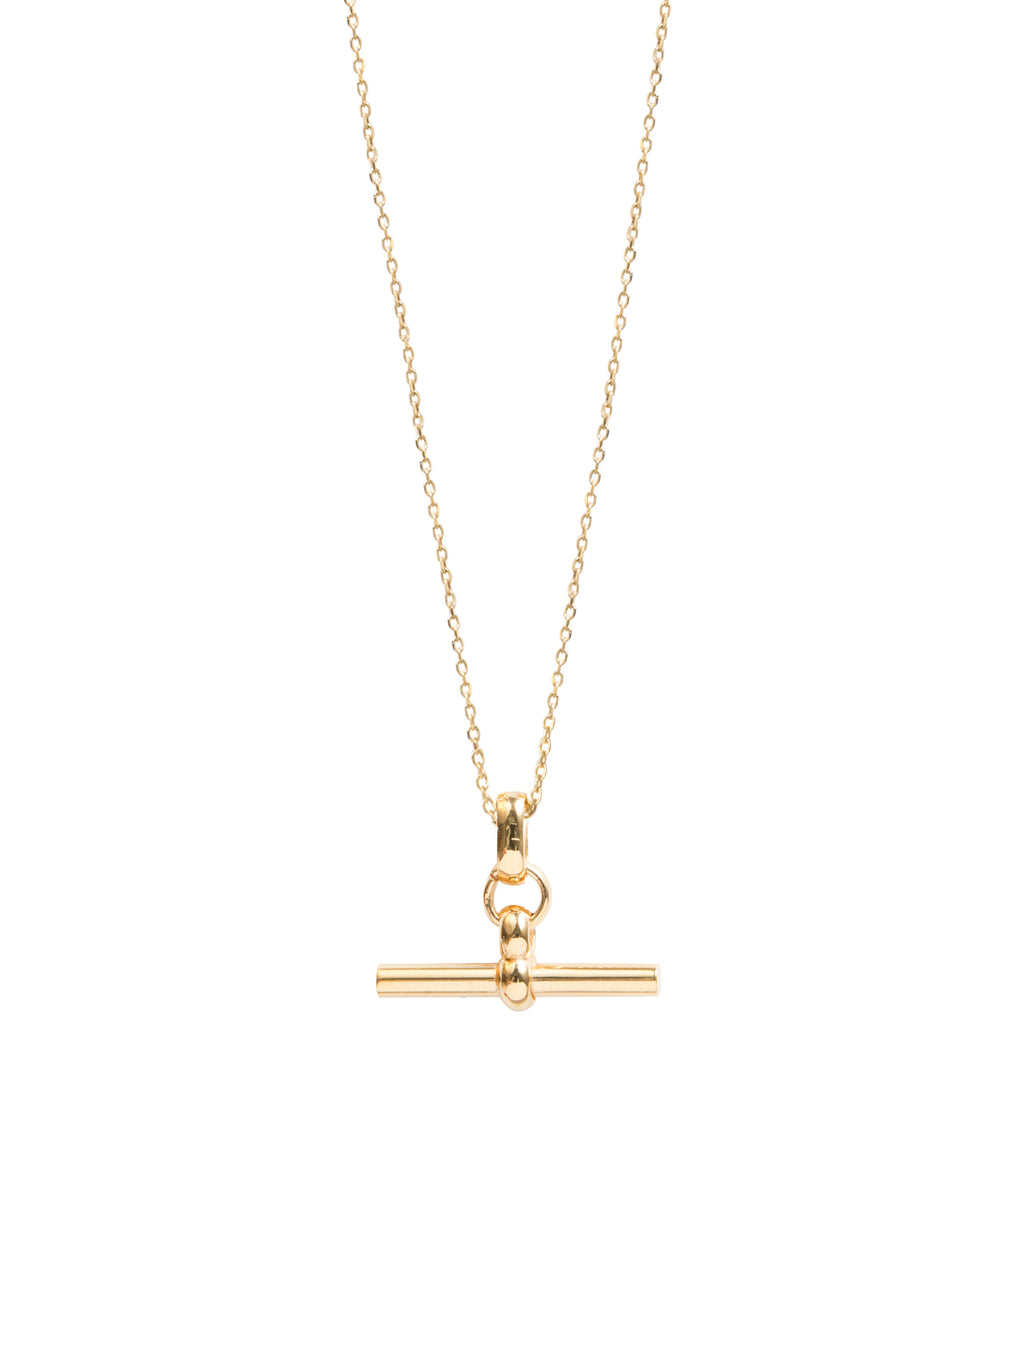 Small Gold T-bar Necklace by Tilly Sveaas